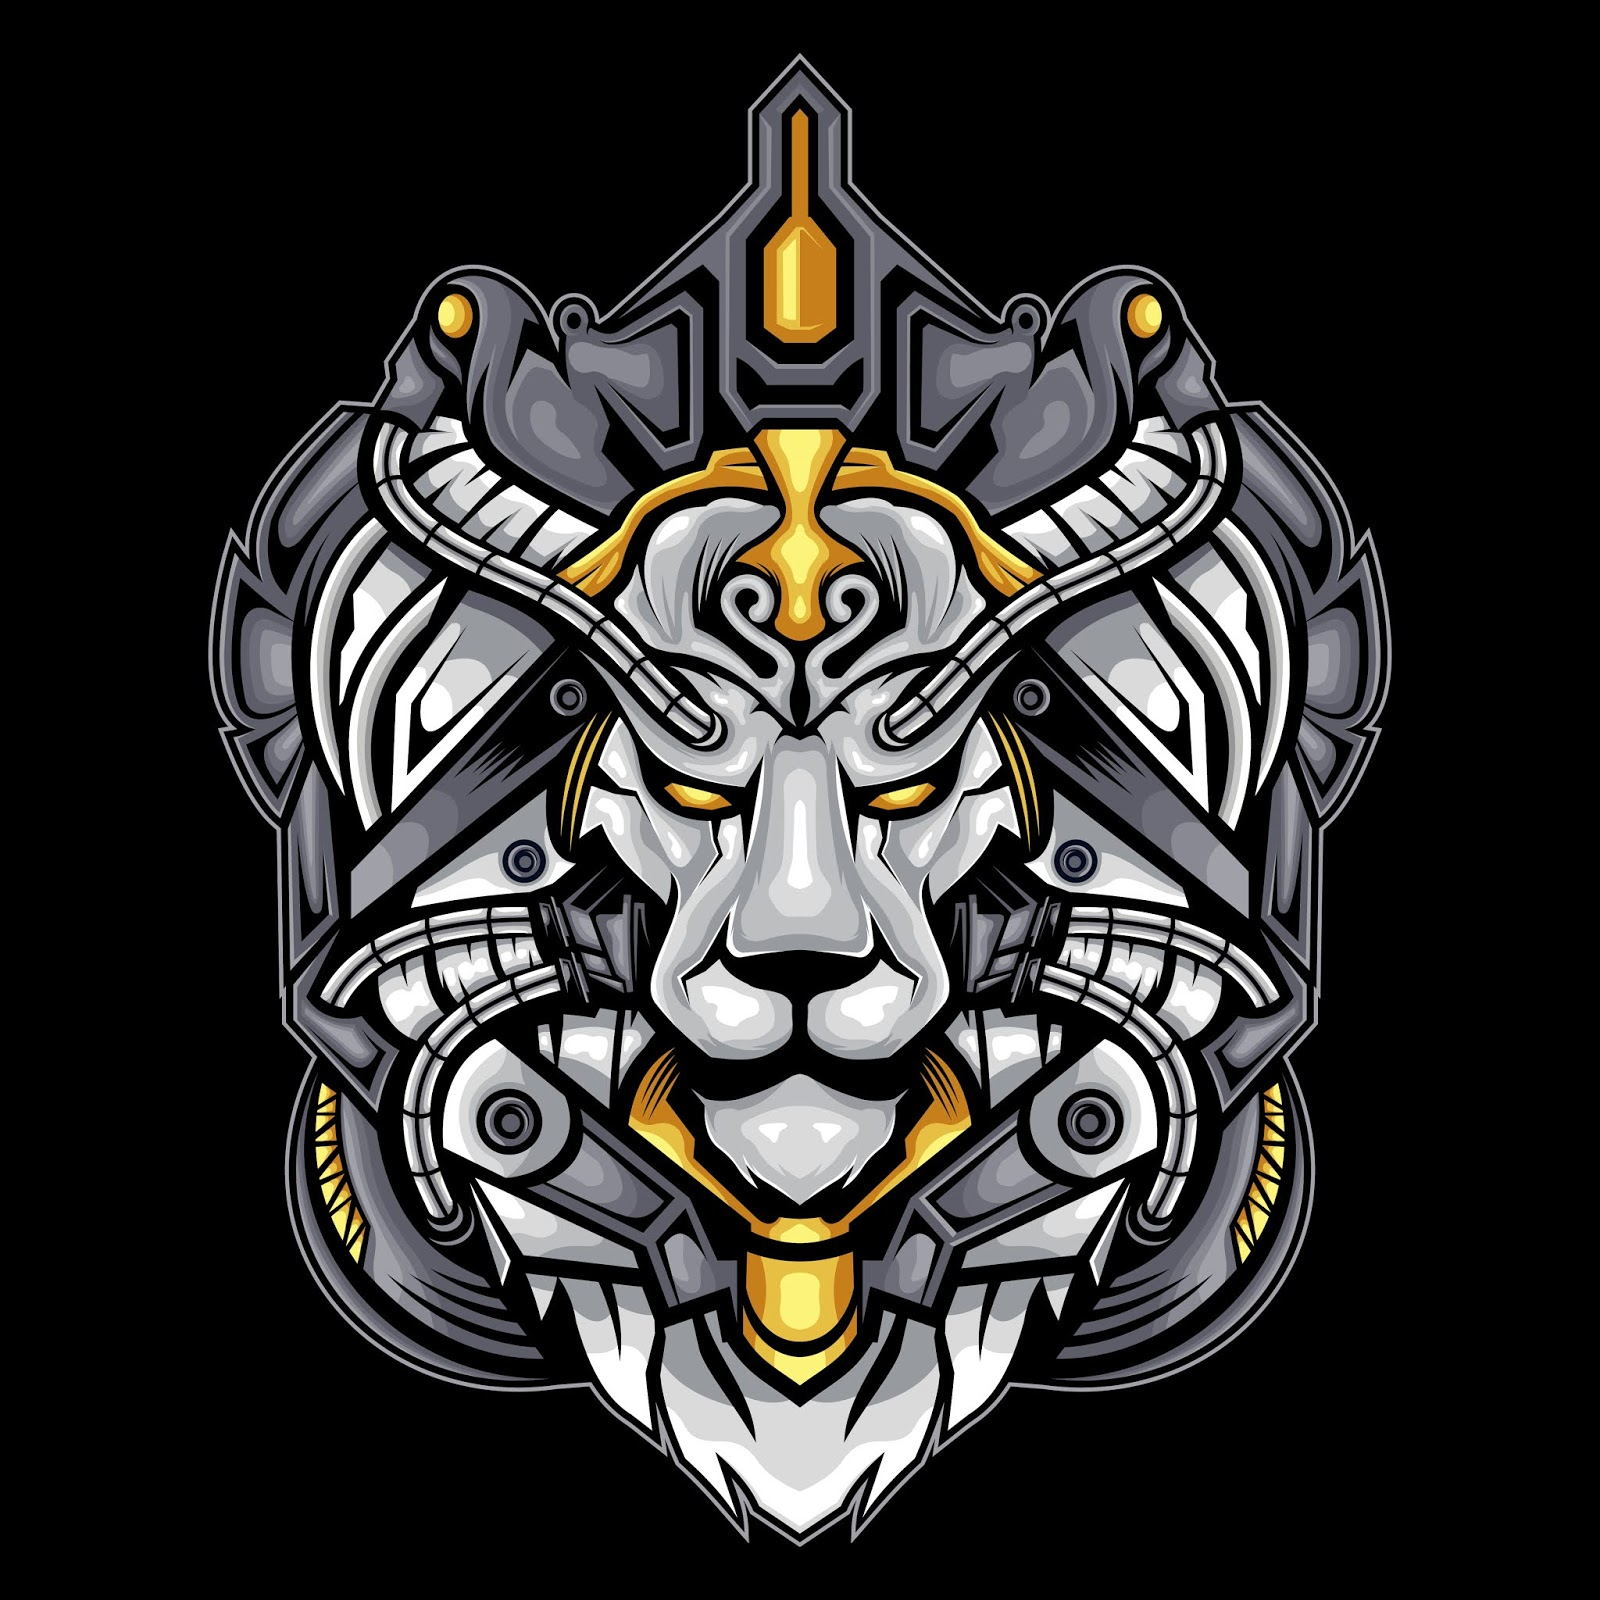 White Lion Face Free Download Vector CDR, AI, EPS and PNG Formats